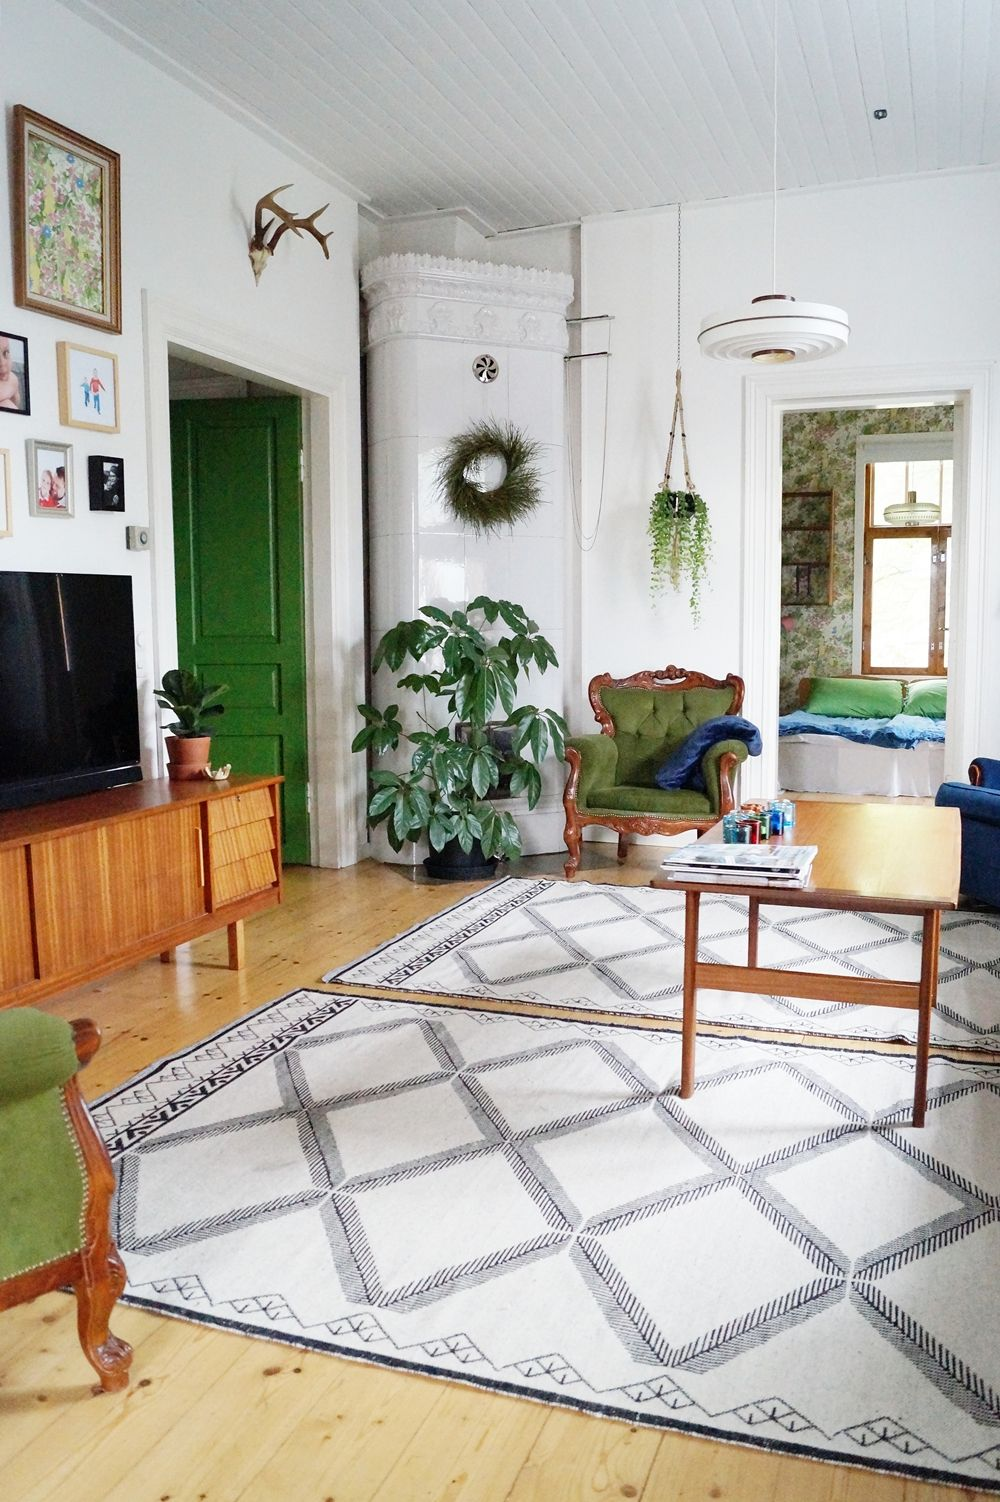 Living Room Old House Old Furnitures Green Rococo Chairs Houseplants Wool Carpet Green Living Room Decor Quality Living Room Furniture Living Room Green